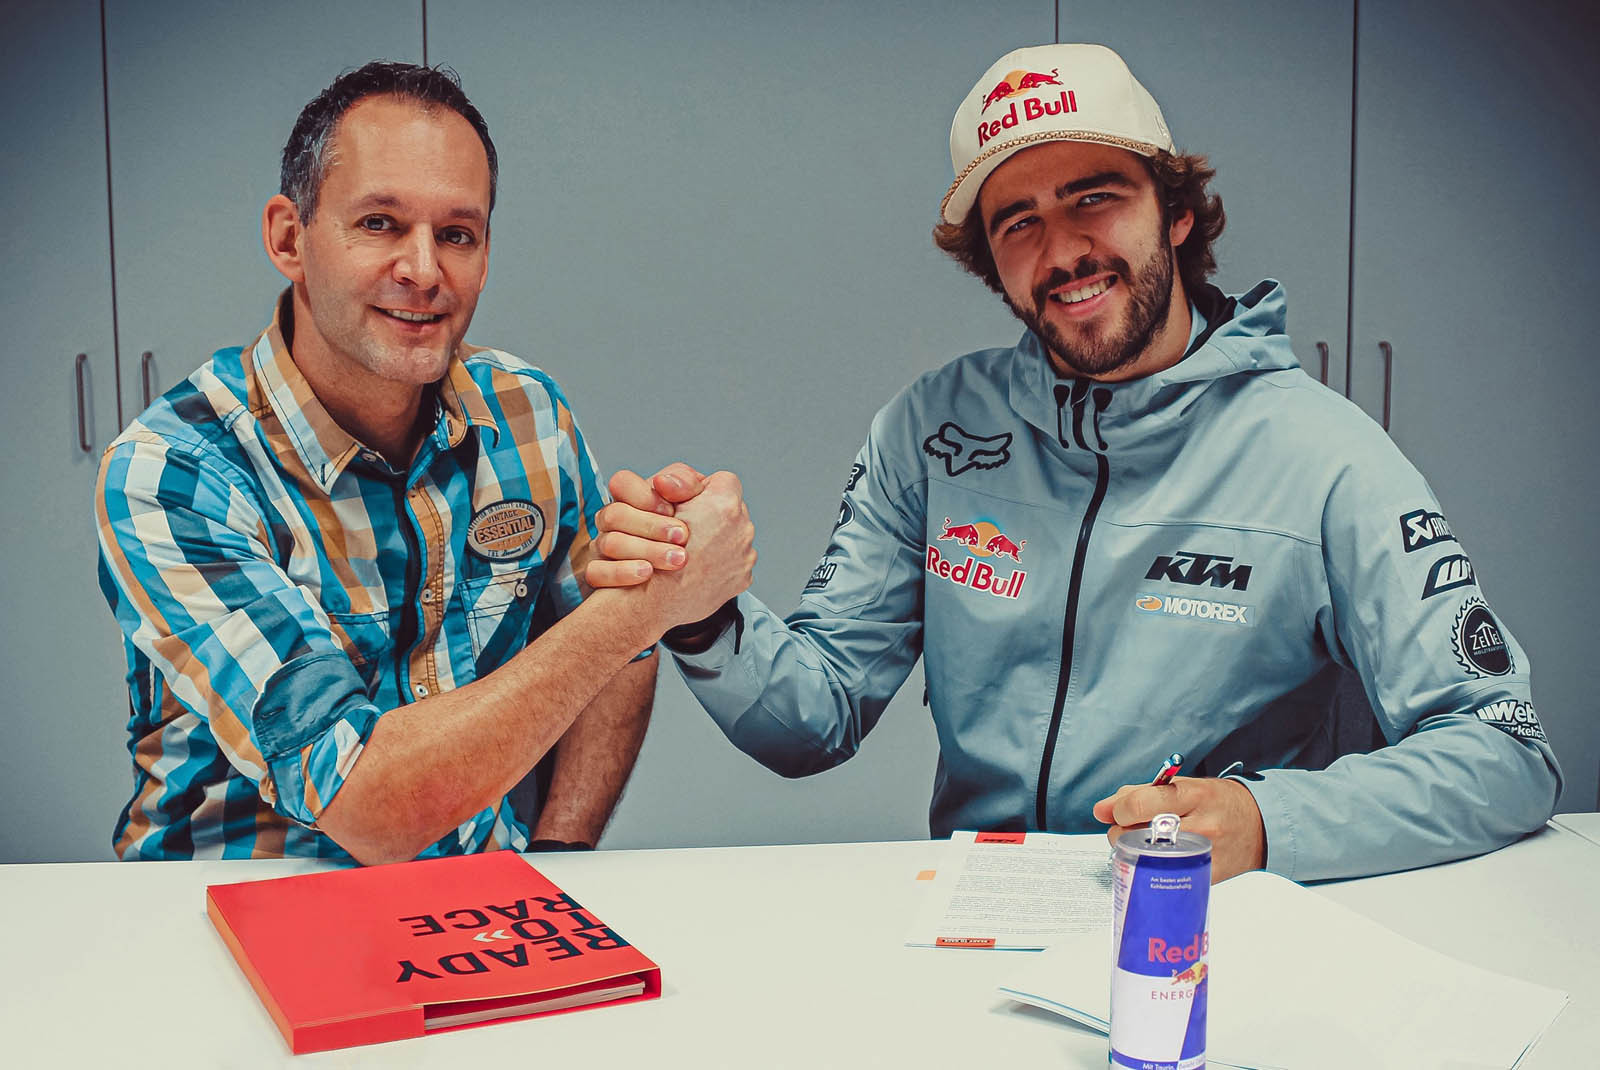 Manuel Lettenbichler signs with KTM Factory Racing